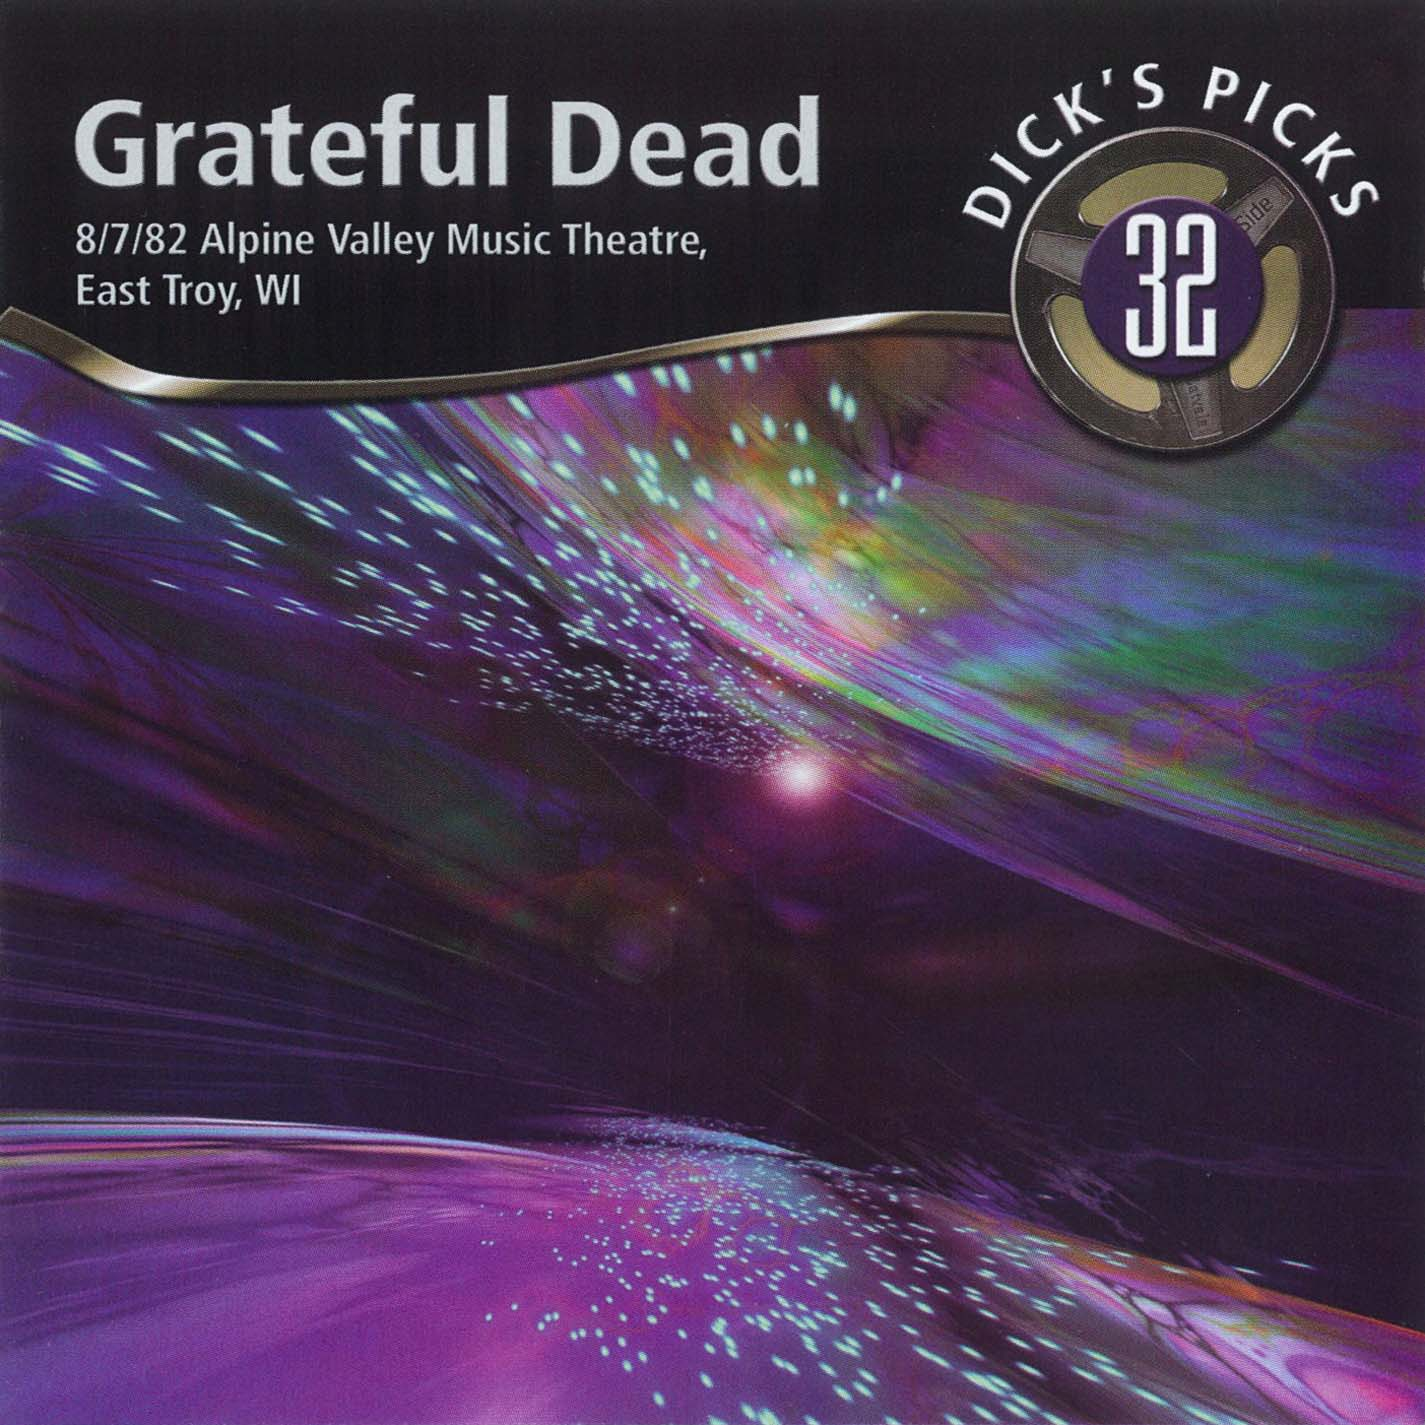 Grateful Dead Dick's Picks 32 album cover artwork